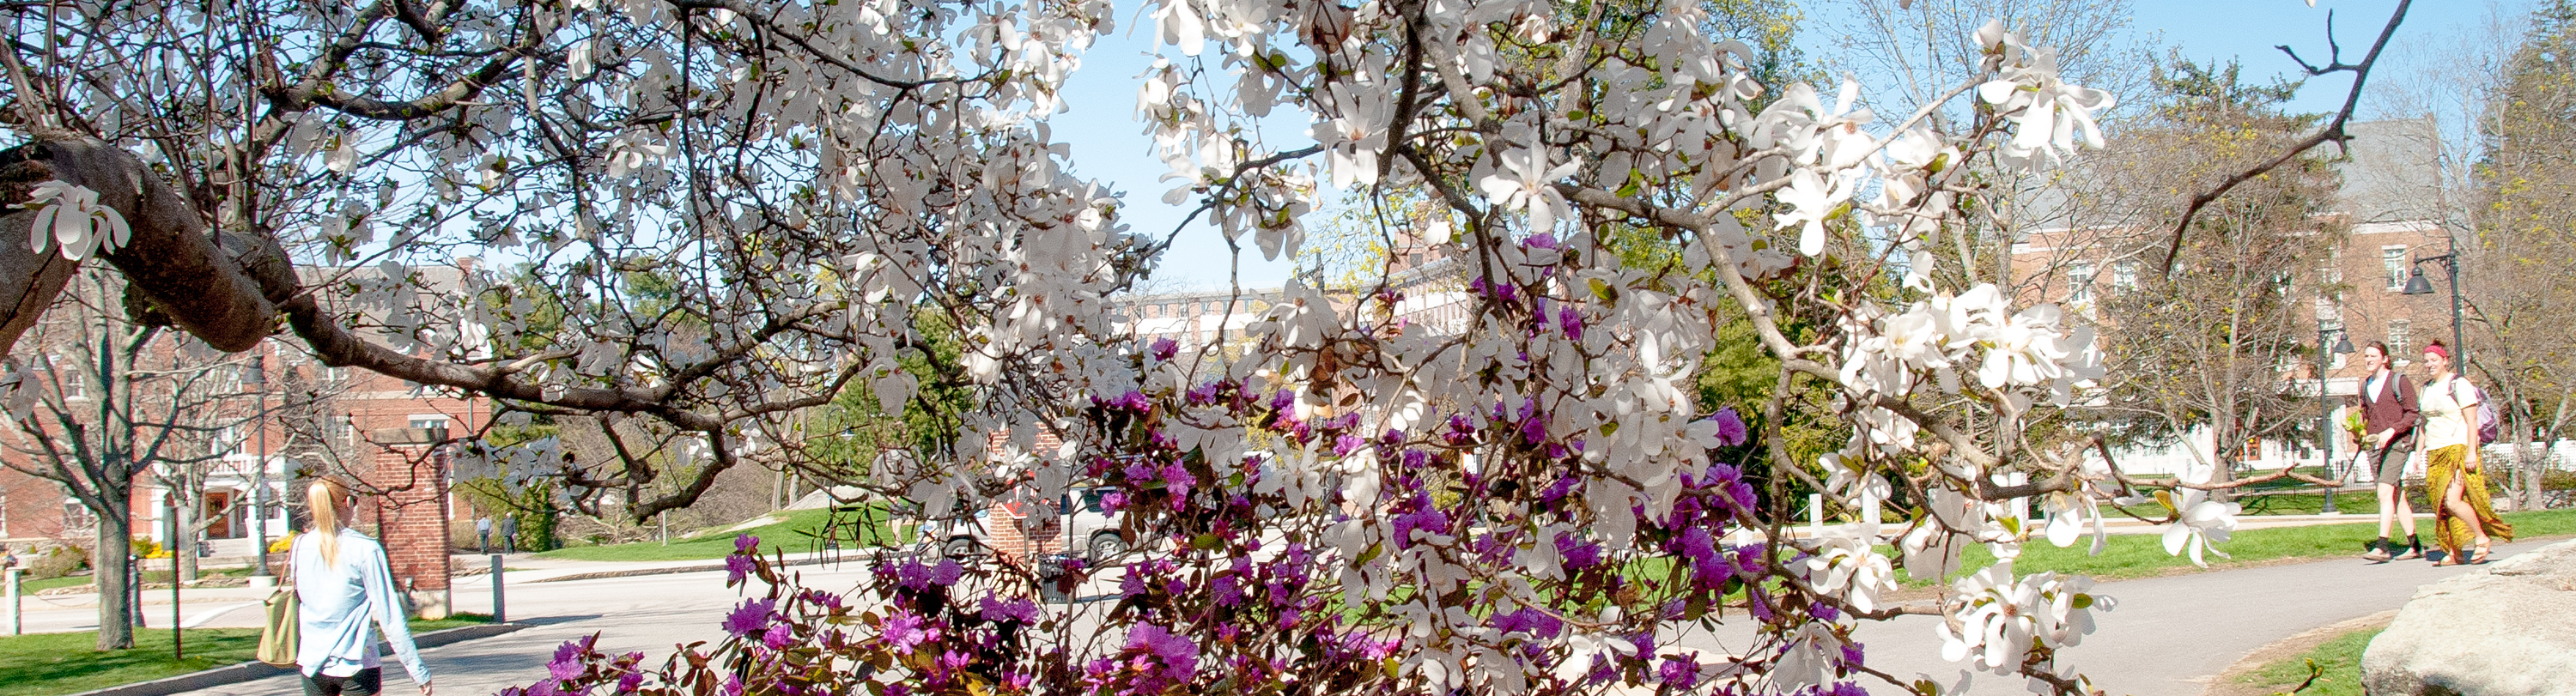 Image of UNH campus and flowers